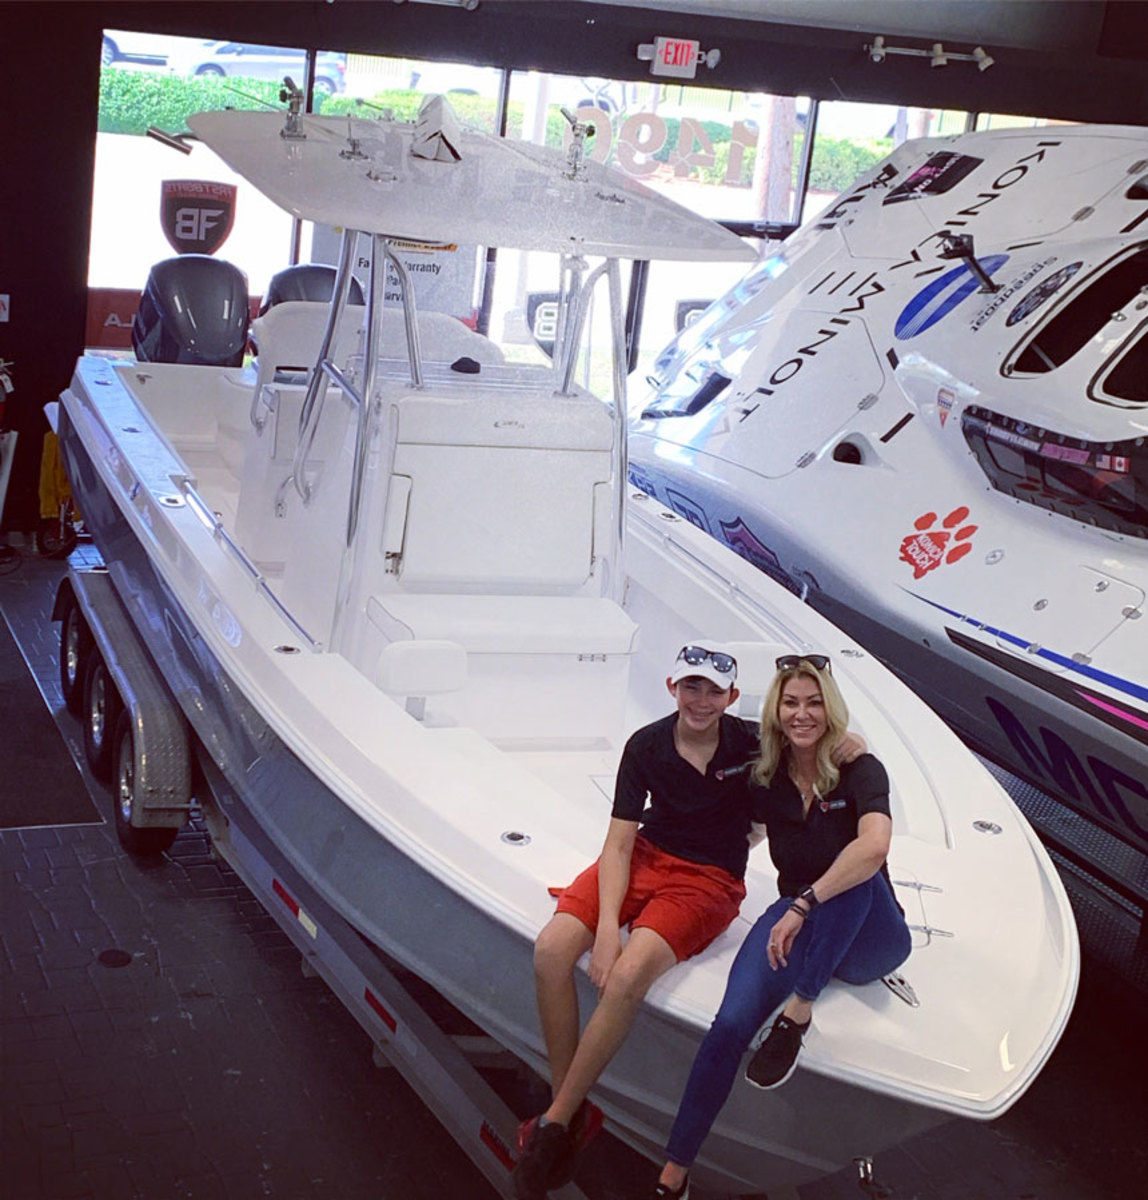 Kim and Chase Sweers on the Contender 28 featured in the video.